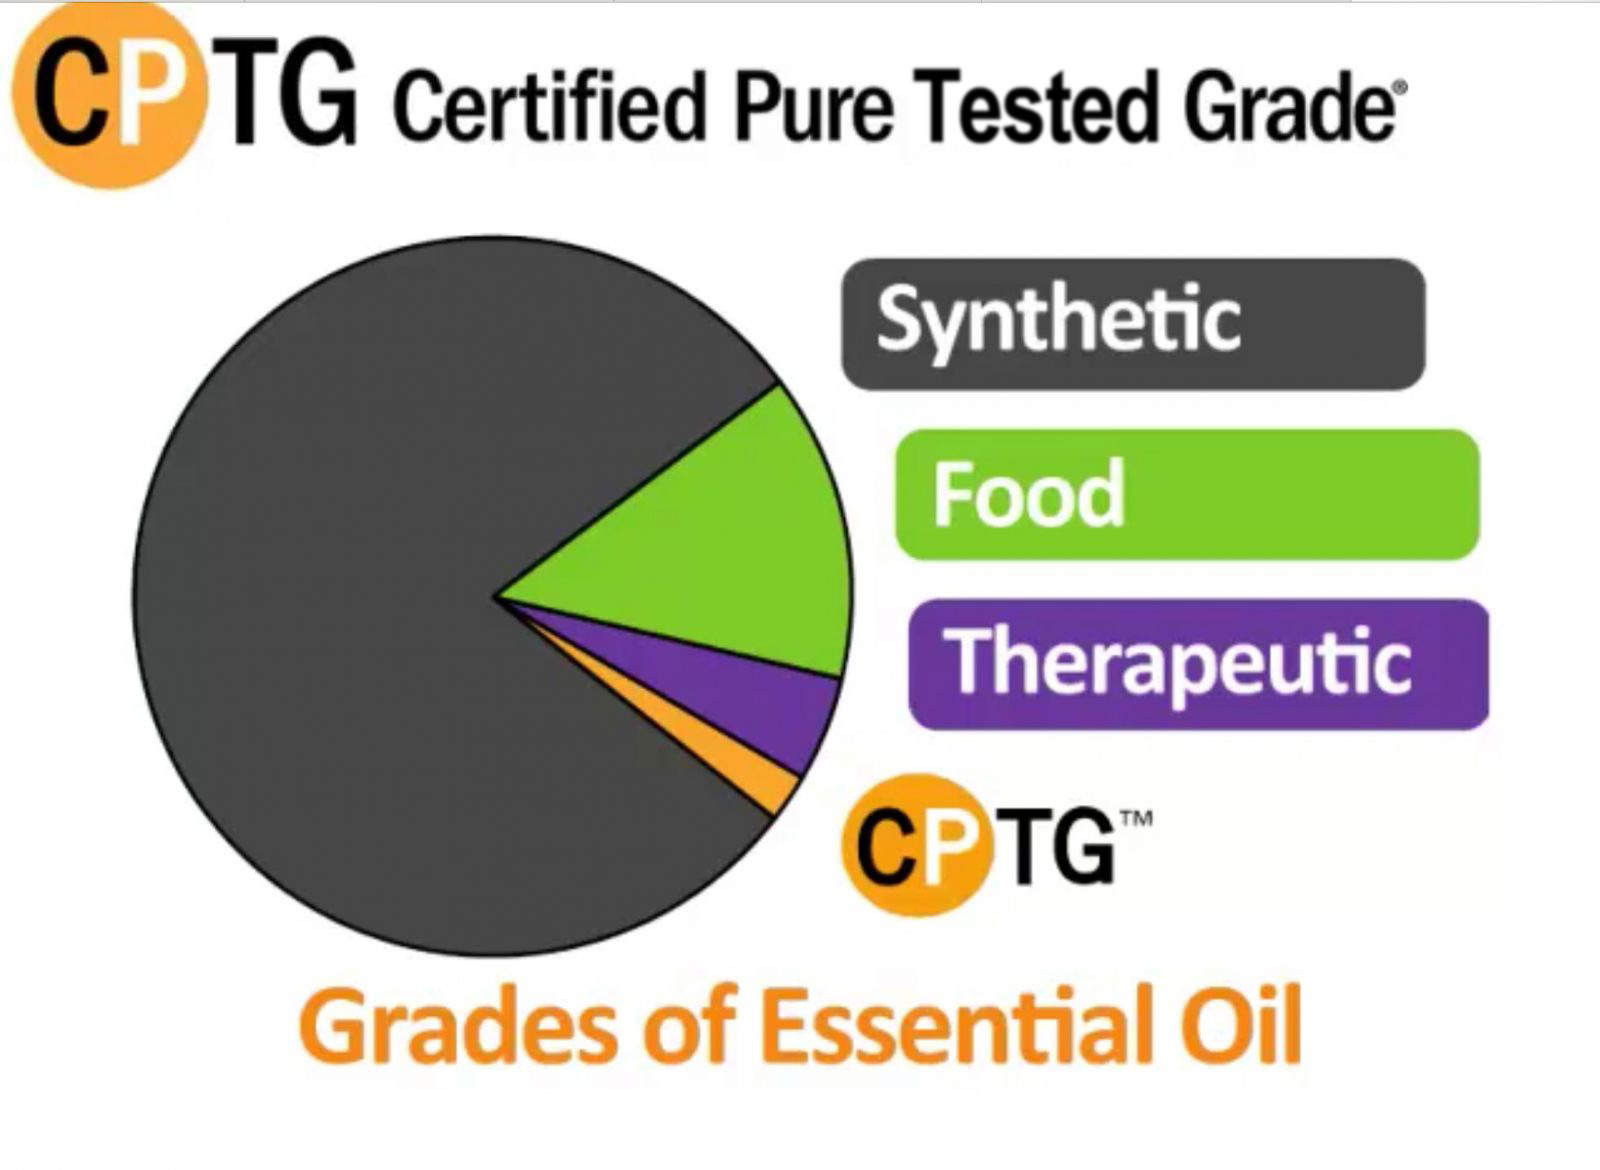 Grades of Essential Oils